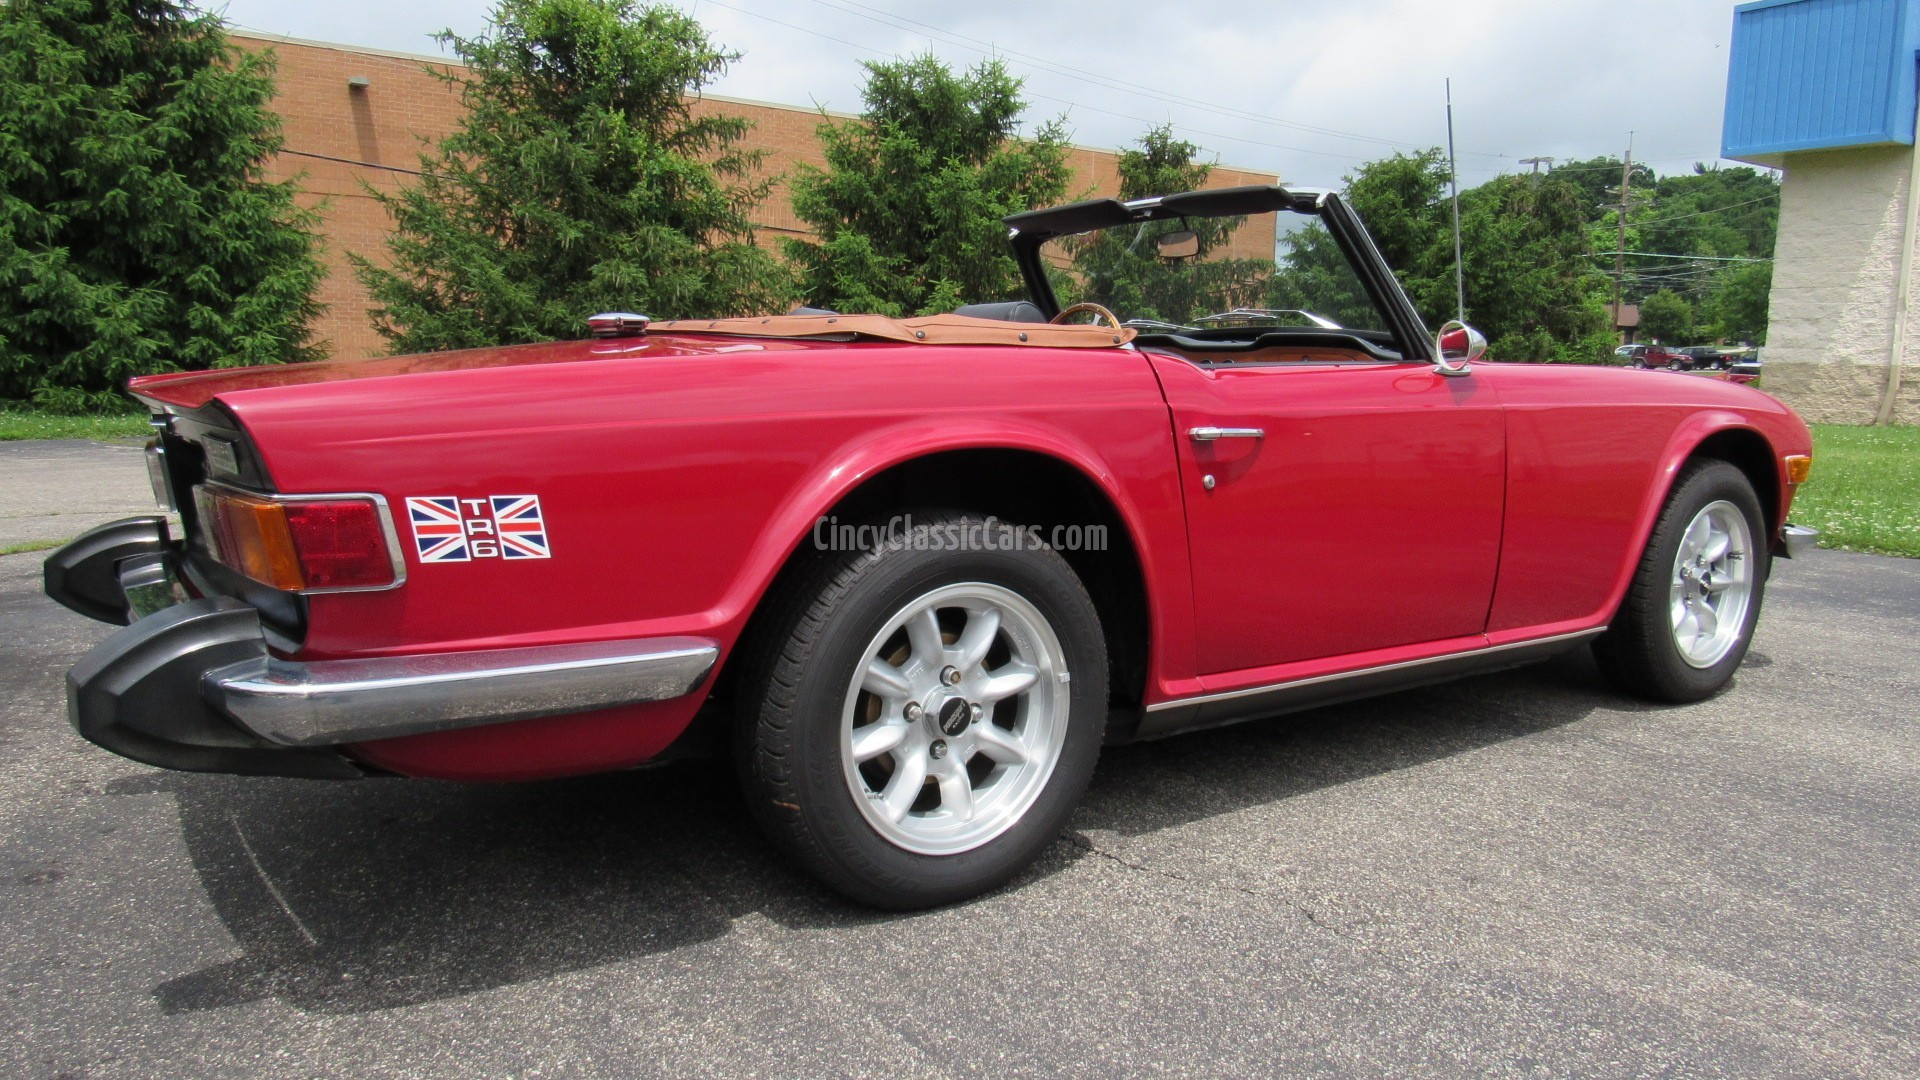 1973 TR6, Overdrive, Hardtop, SOLD! | Cincy Classic Cars